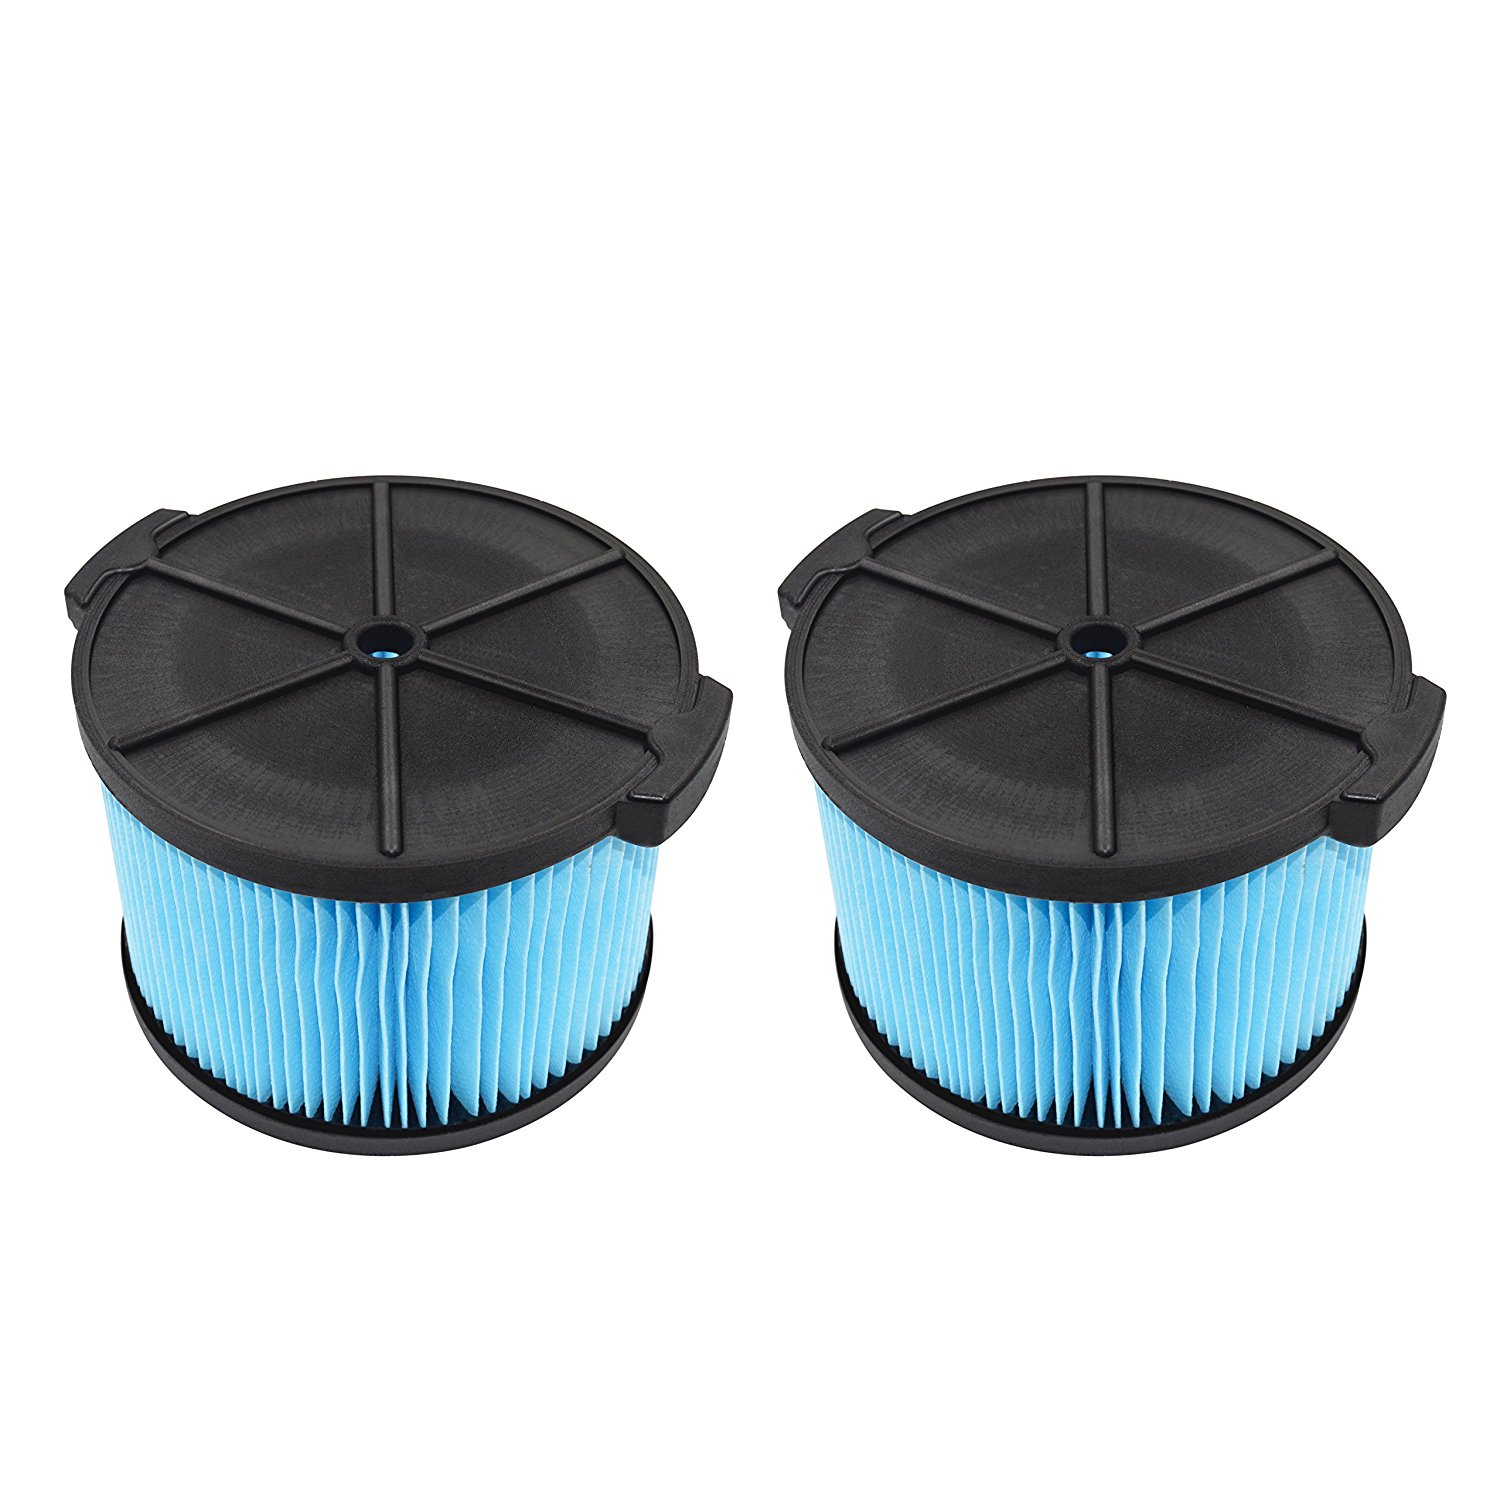 Bonacell 2 Pack Replacement Ridgid VF3500 3-Layer Filter for WD4050